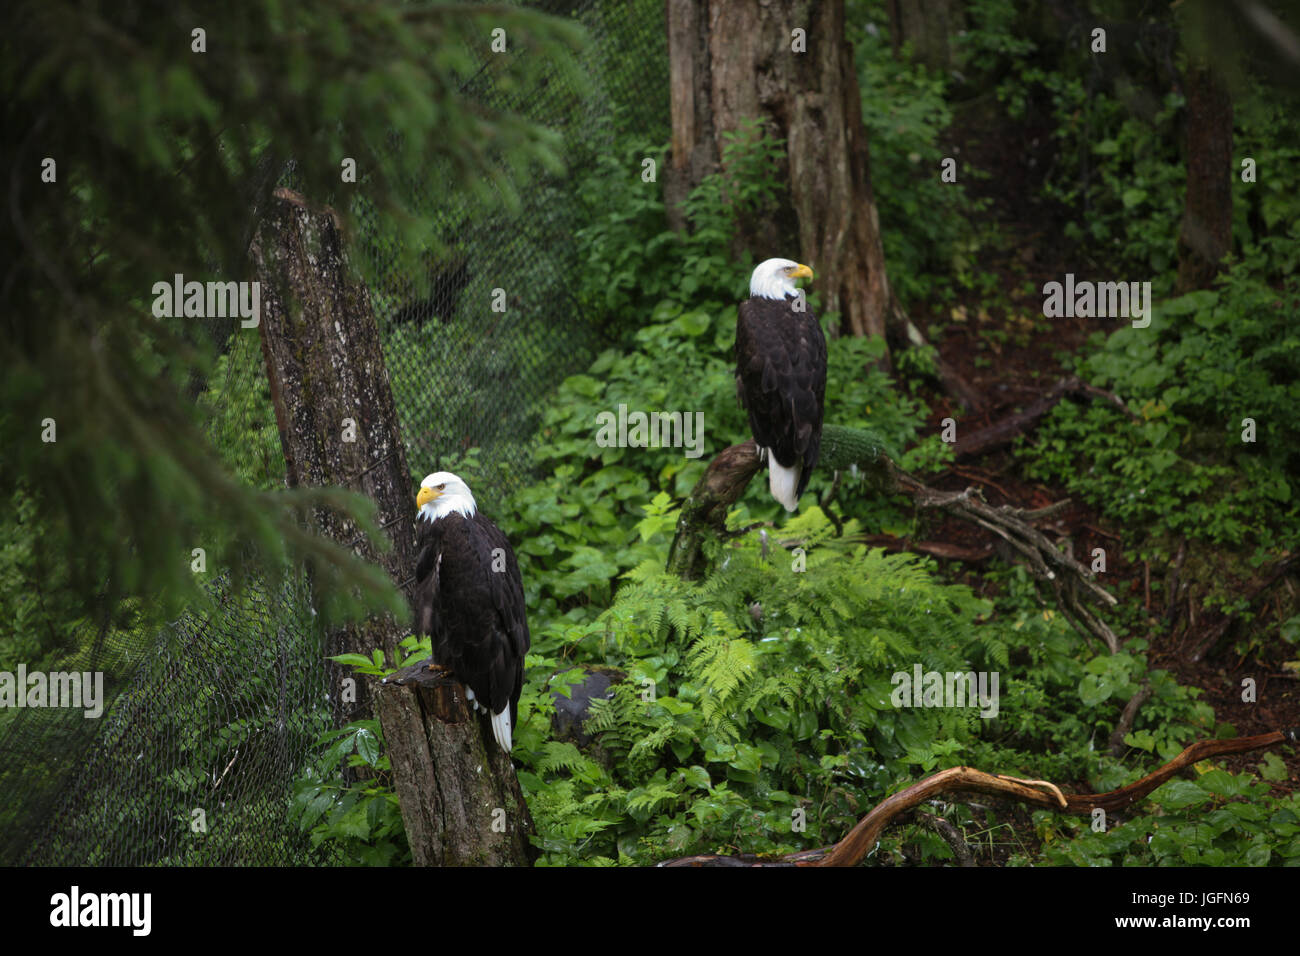 At Sitka, Alaska's Raptor Center, two American bald eagles are perched on trees within dense forest. - Stock Image